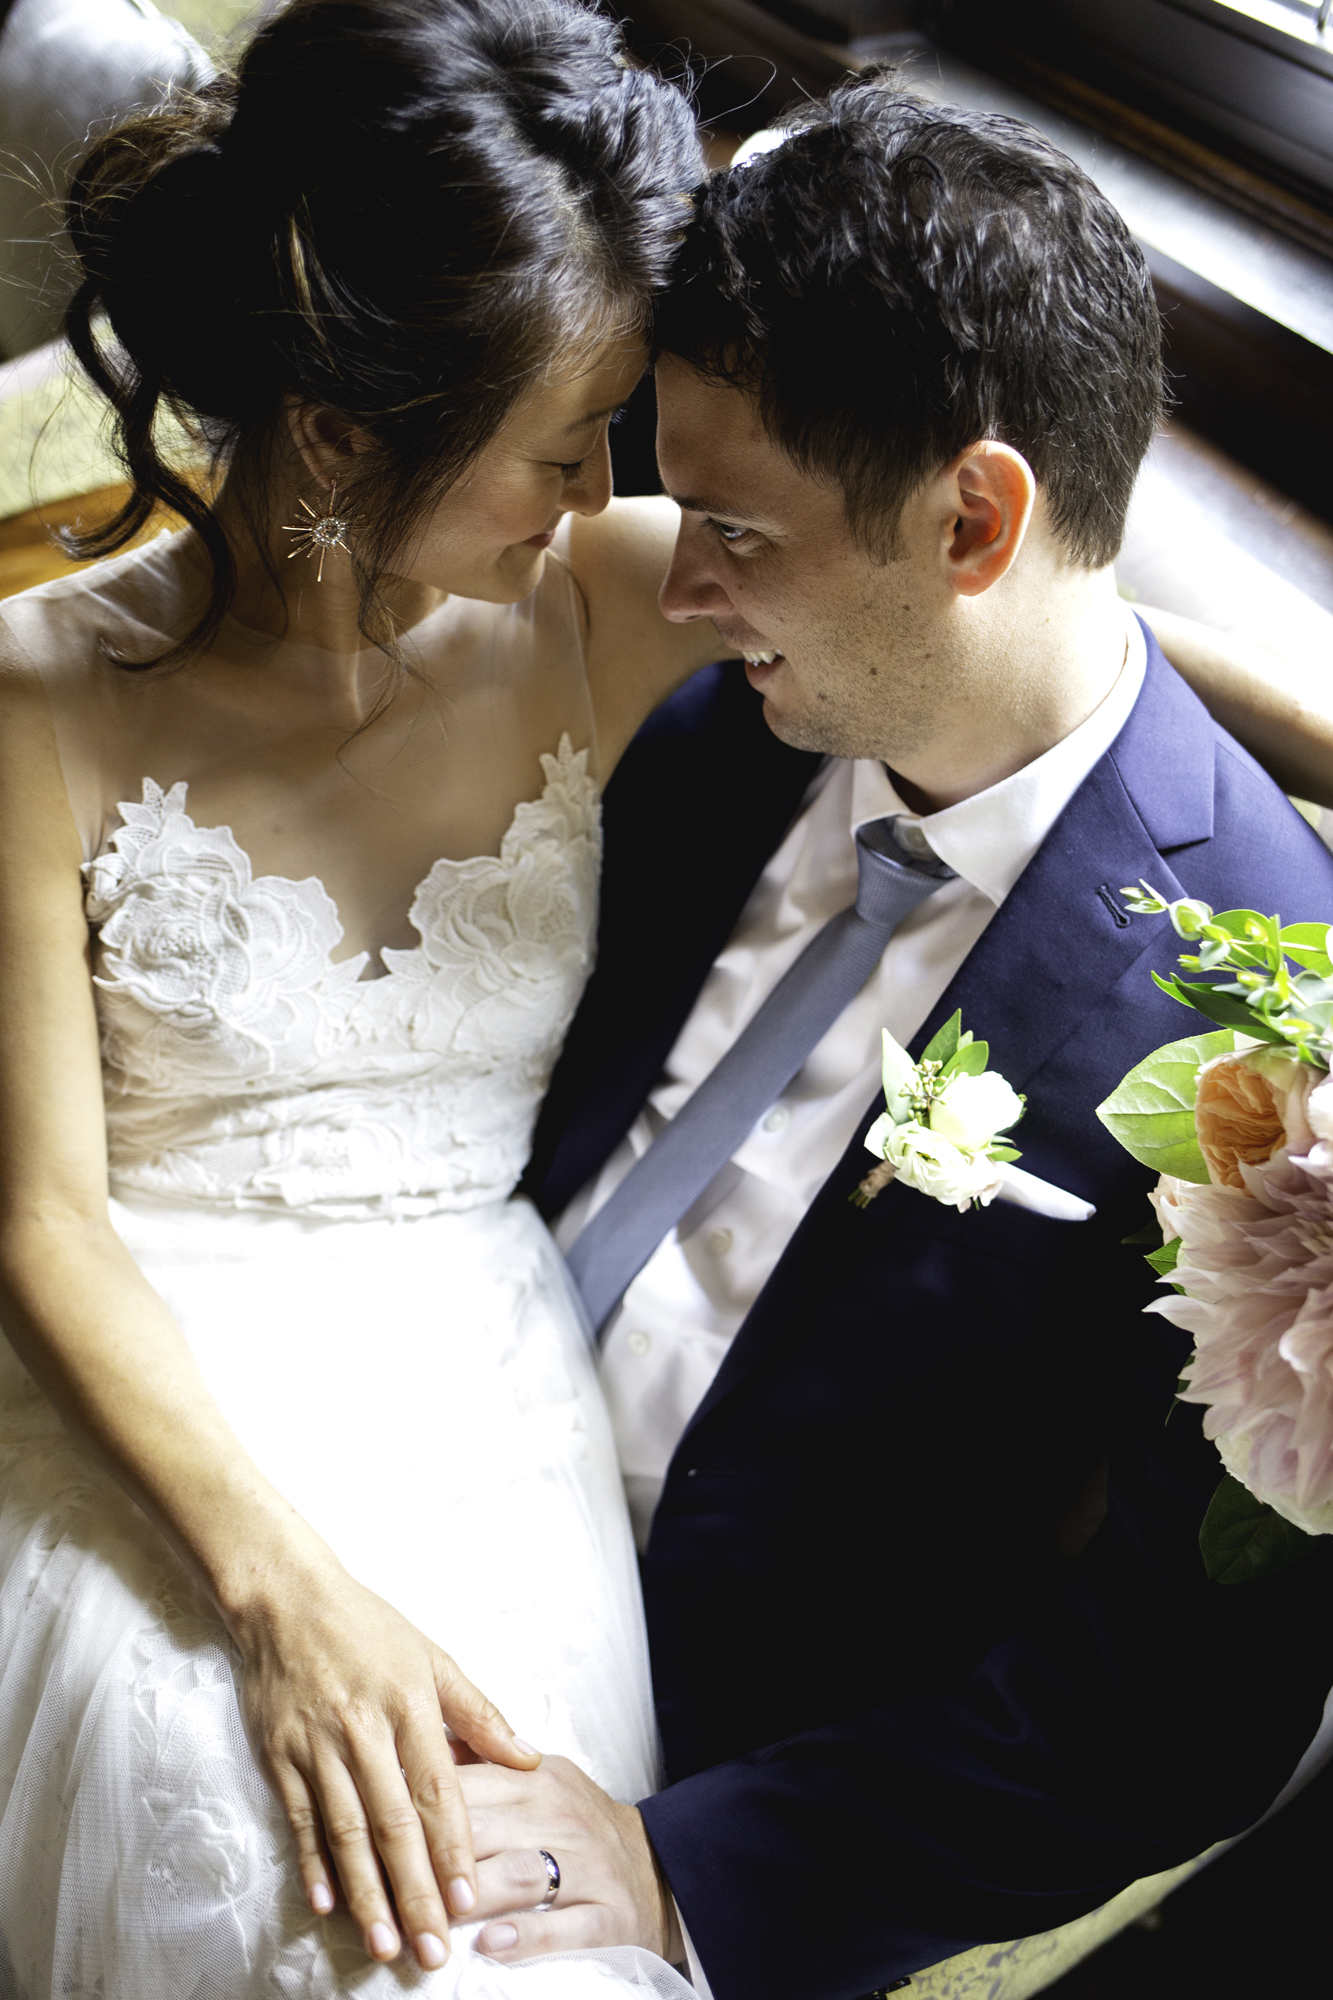 Sophie and John share a moment as newlyweds at  The Minneapolis Club .  Wedding by:  Nicole McCoy